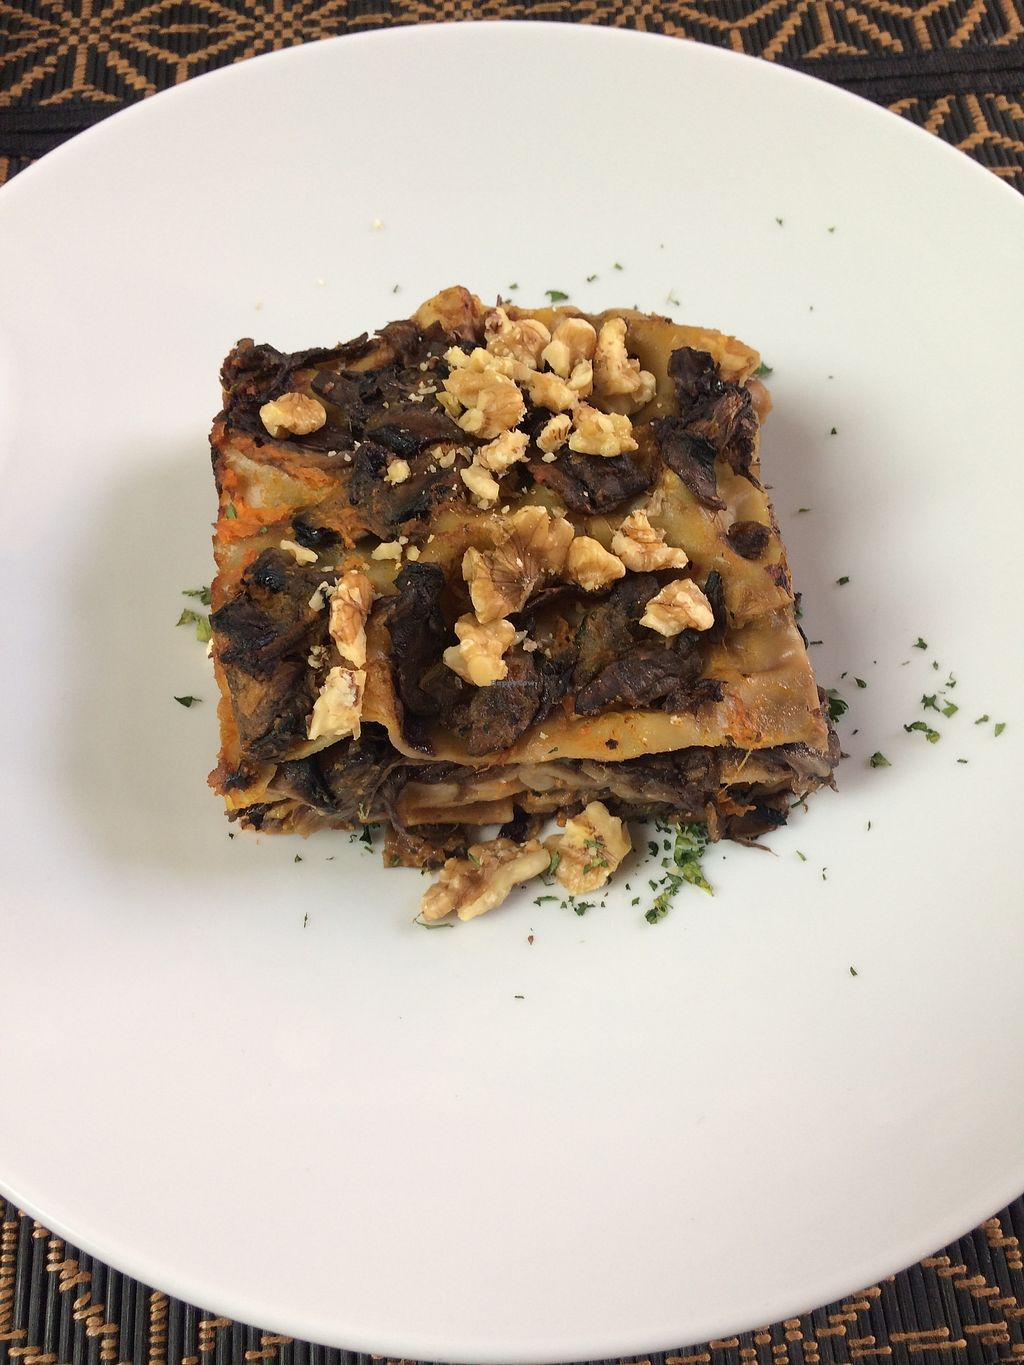 """Photo of Giardino Tergesteo  by <a href=""""/members/profile/siderealfire"""">siderealfire</a> <br/>Vegan  bran lasagna with pumpkin béchamel, mushrooms, radicchio and topped with walnuts <br/> February 25, 2018  - <a href='/contact/abuse/image/84598/363582'>Report</a>"""